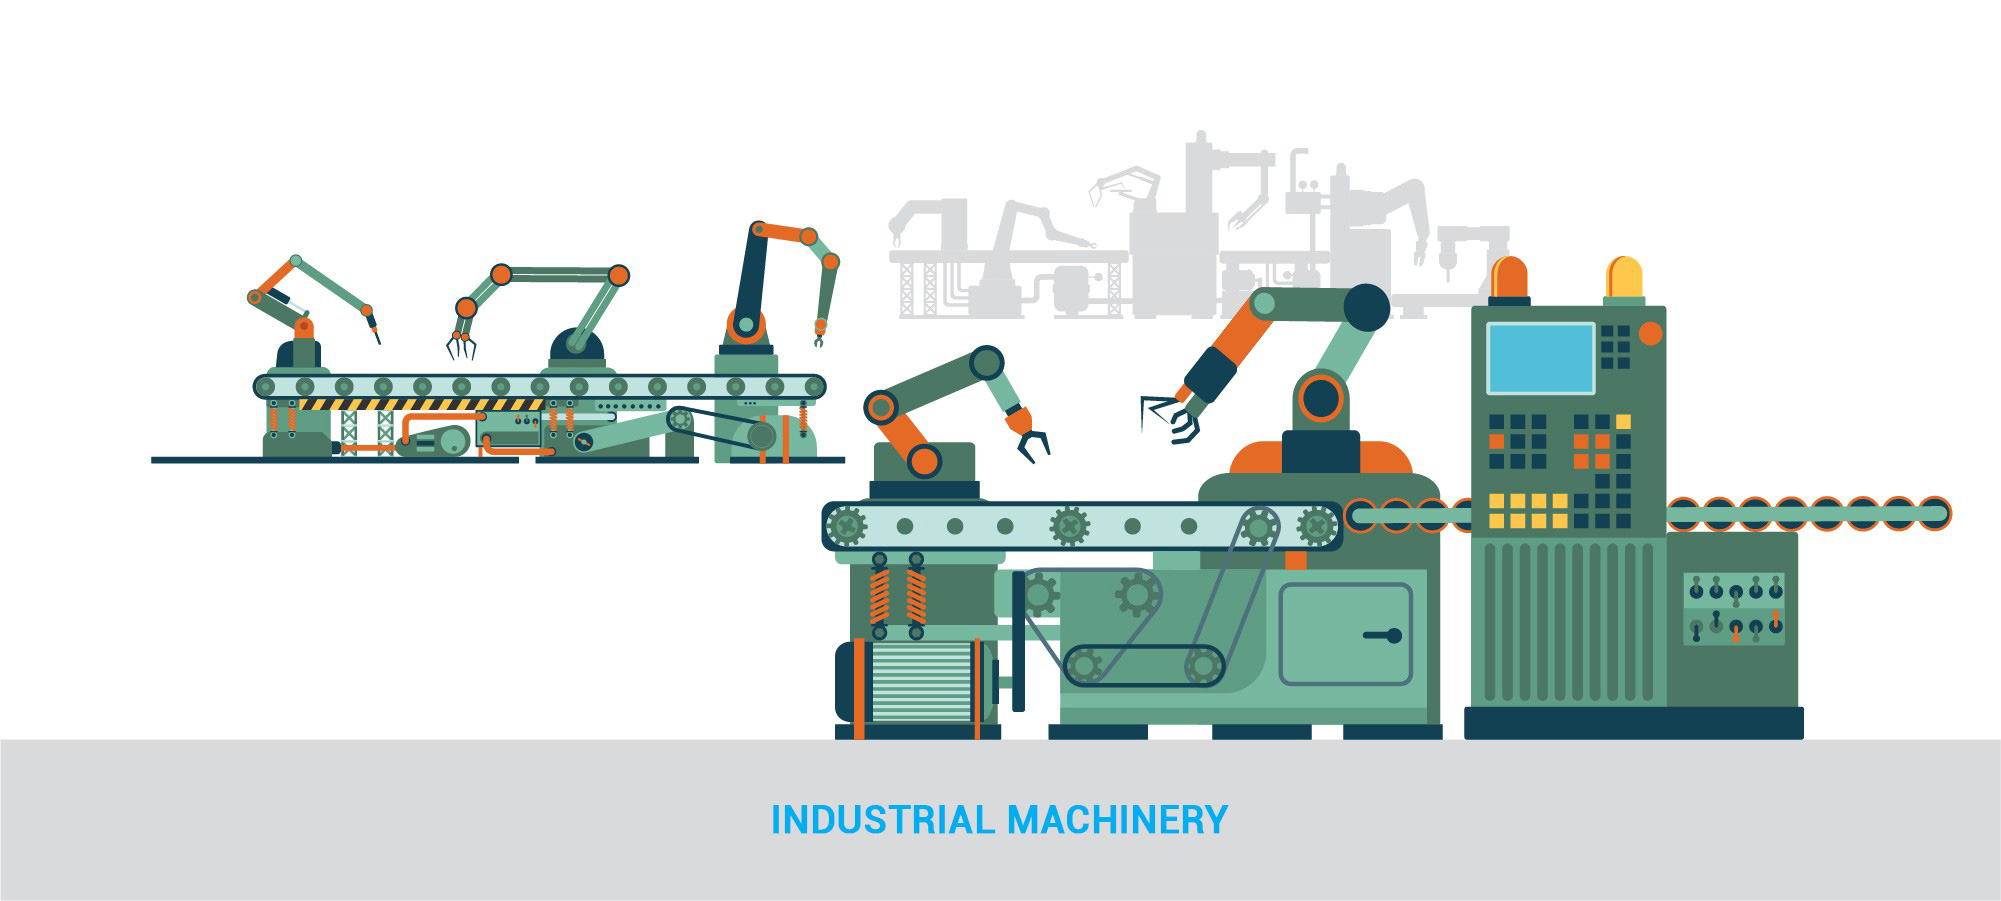 Industrial-Machinery-2